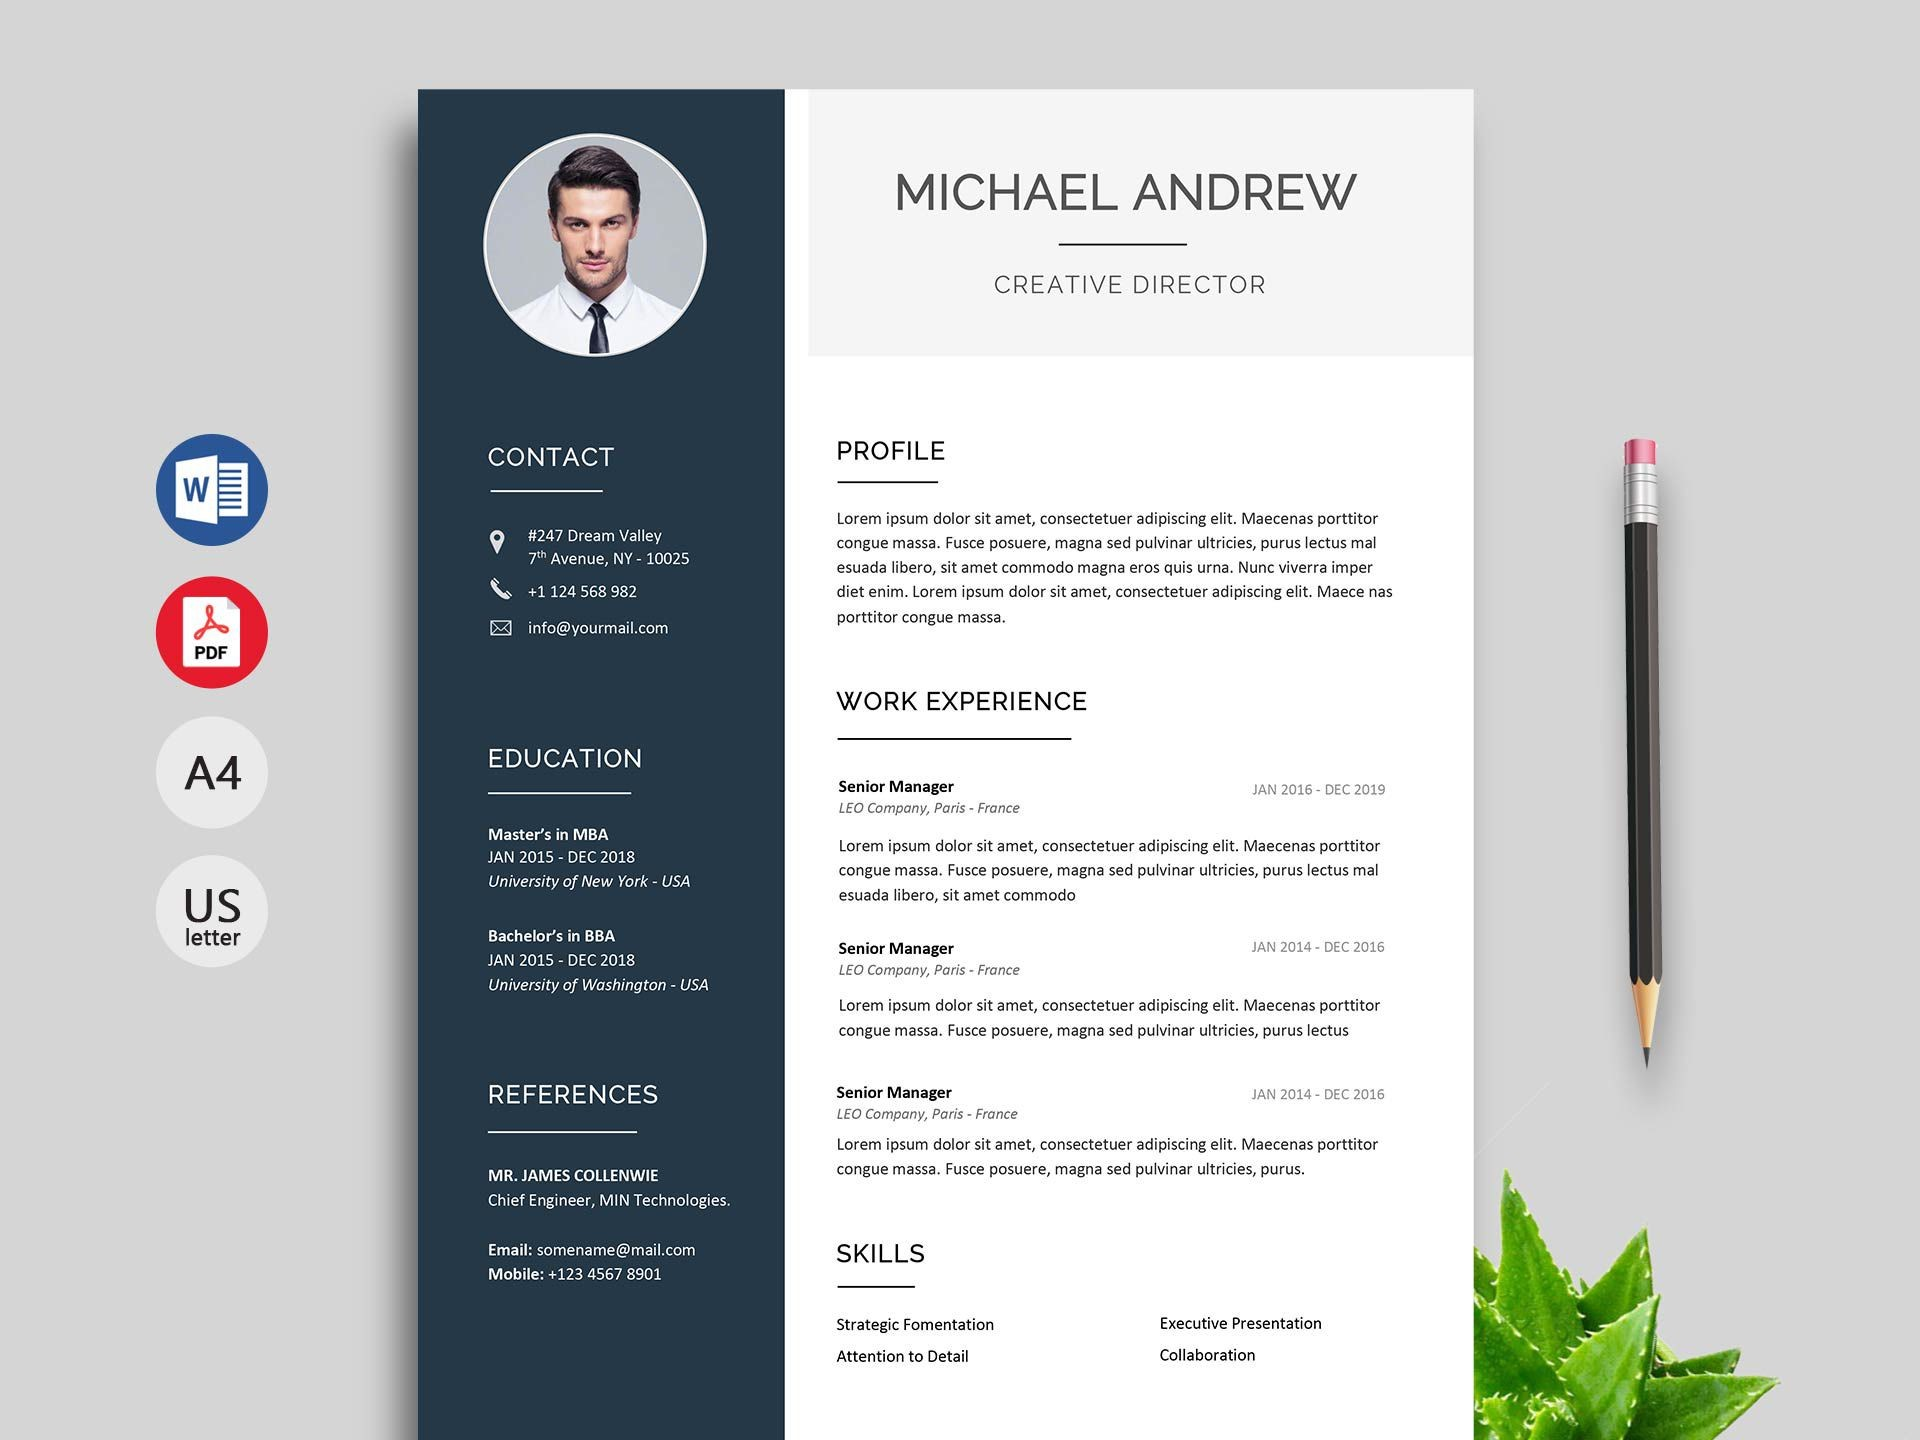 008 Astounding Curriculum Vitae Template Free Design  Download South Africa Format Pdf Sample1920